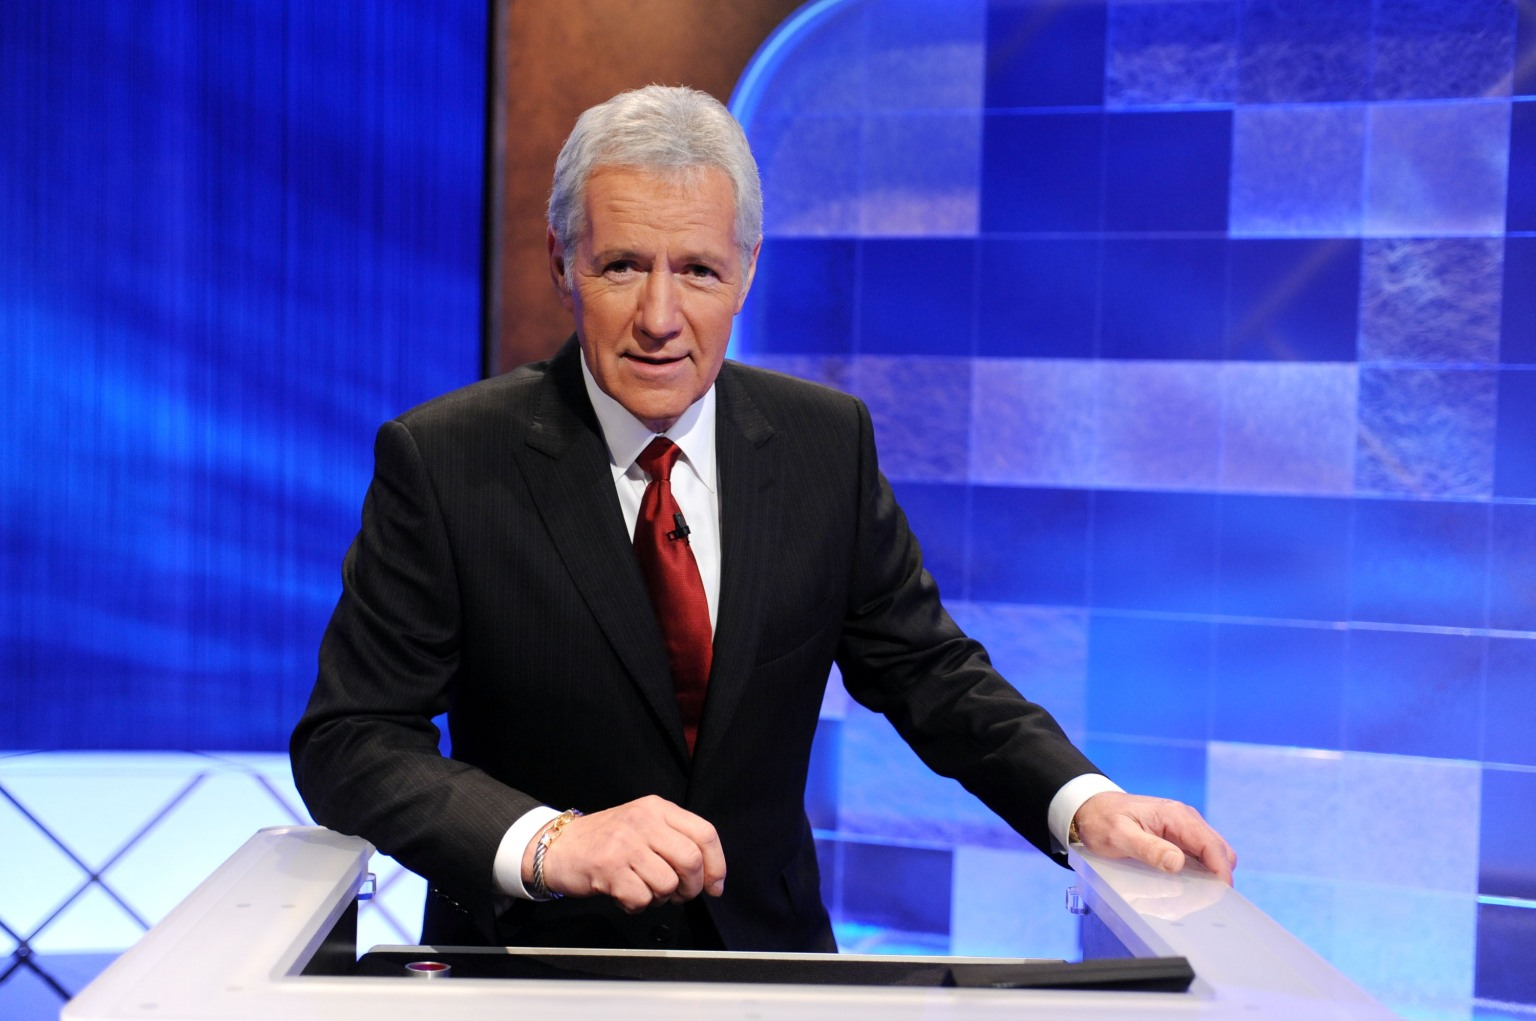 PROGRAMMING ALERT: Two Episodes of Jeopardy! to Air Friday on NBC Palm Springs